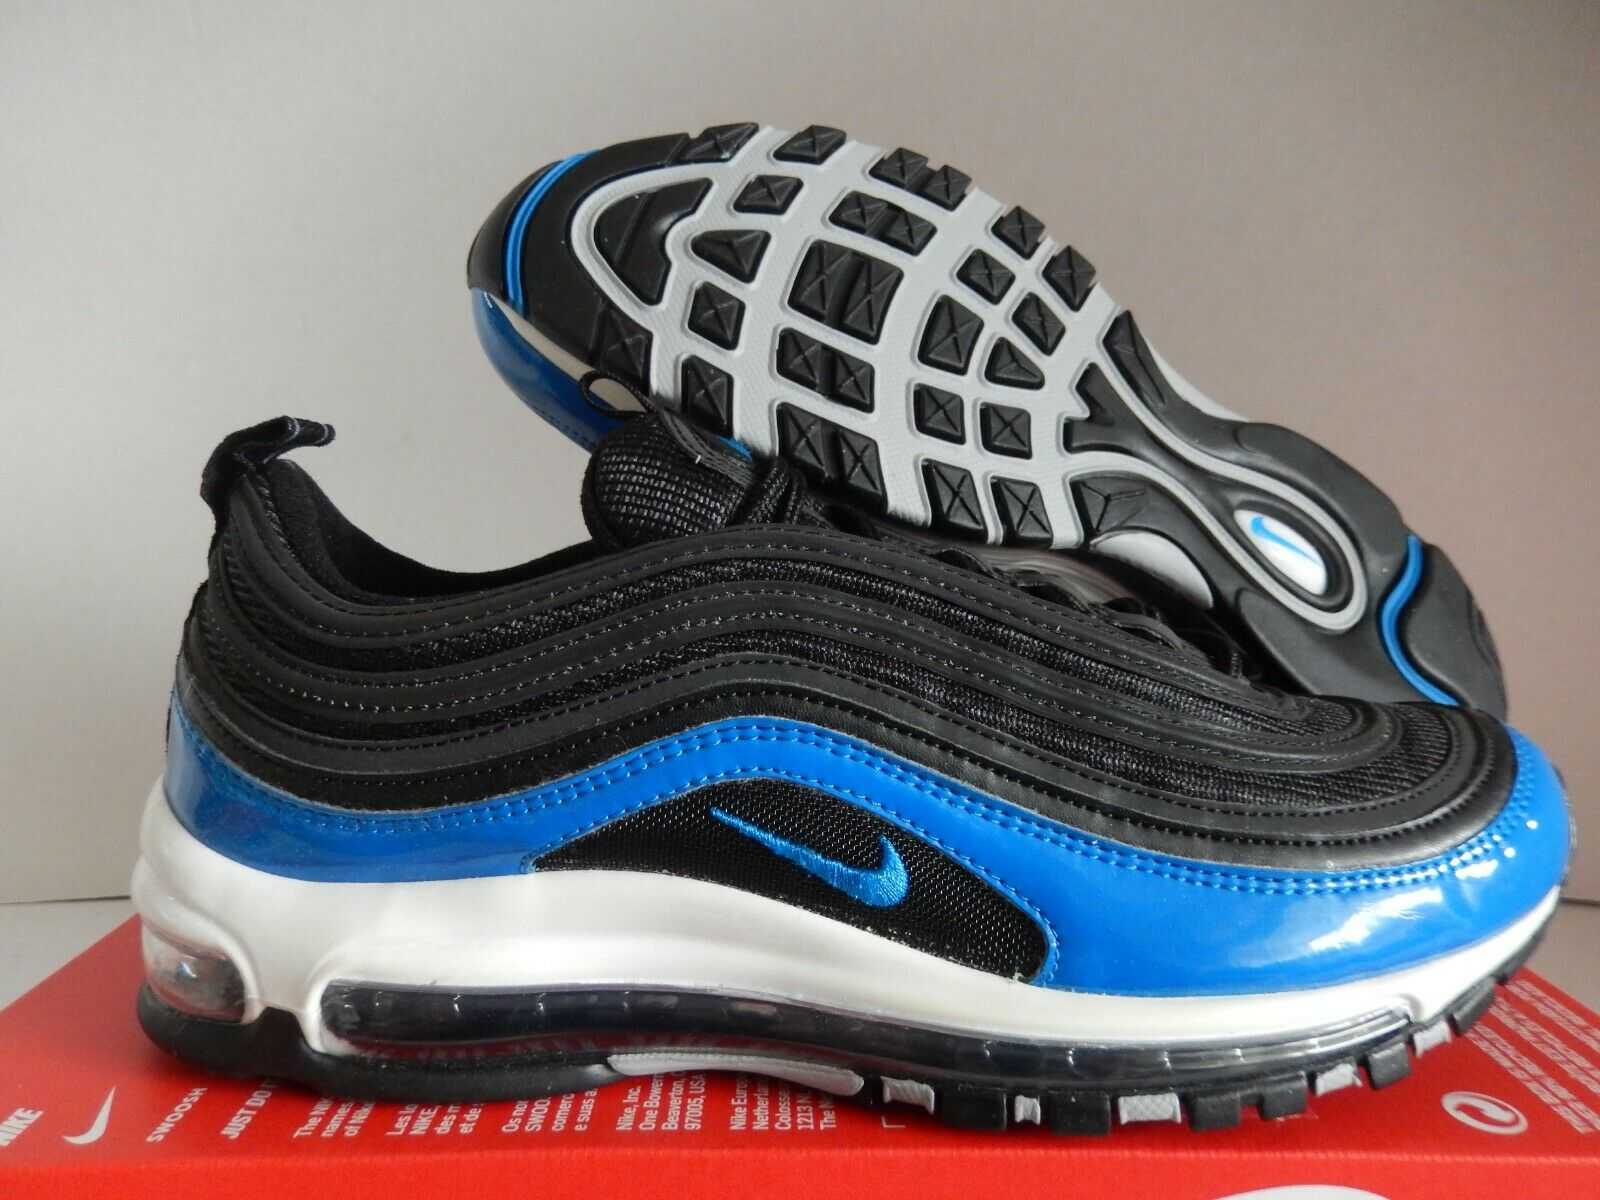 NIKE AIR MAX 97 BLACK-blueE NEBULA-WOLF GREY SZ 9.5 [921826-011]